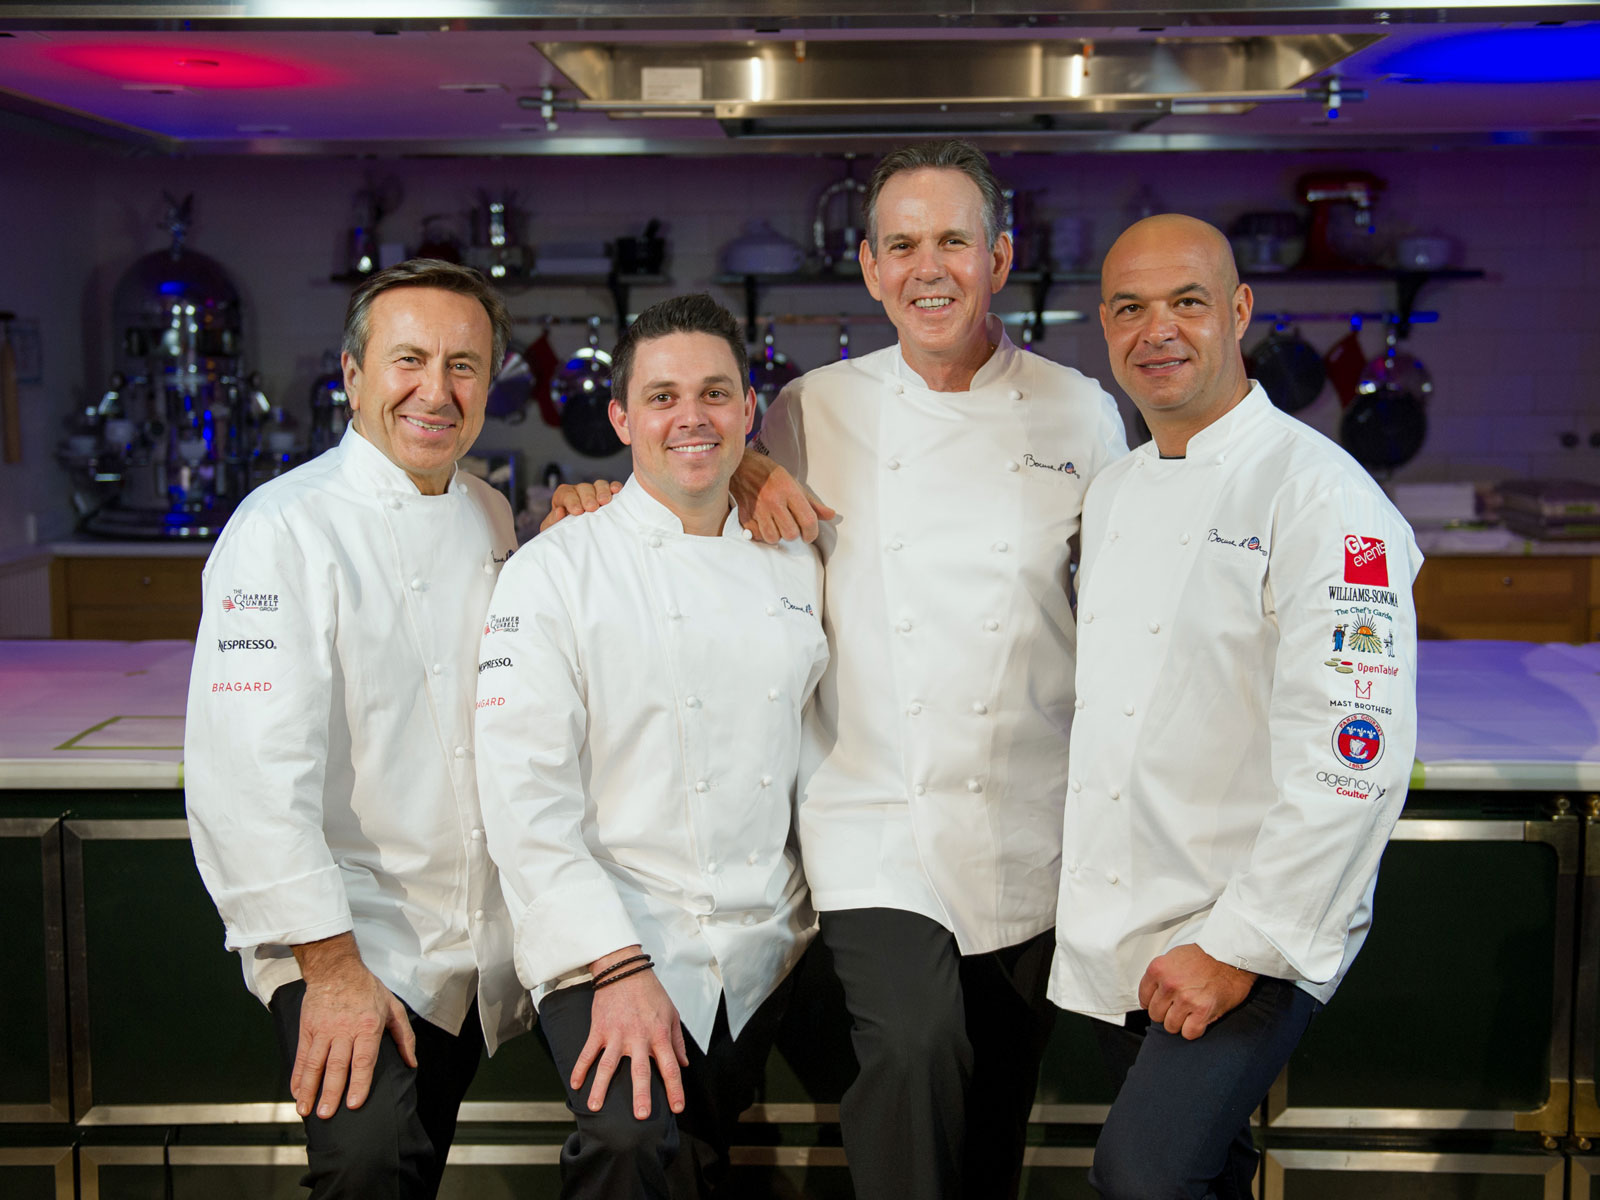 Bocuse d'Or Team